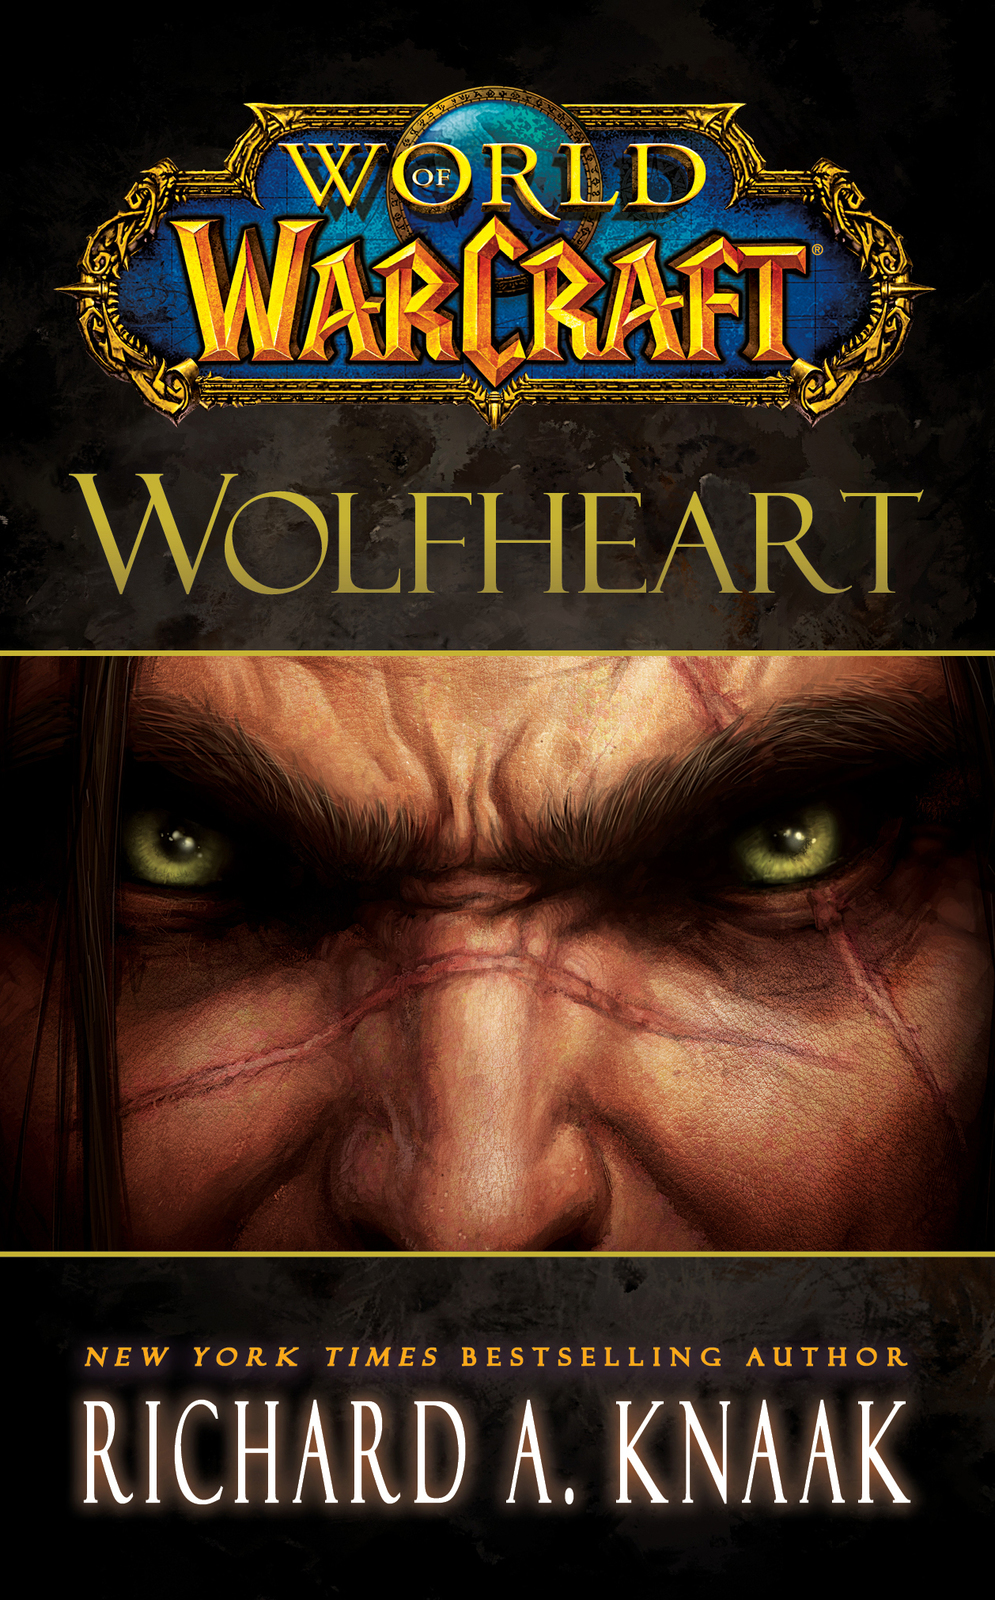 World of Warcraft: Wolfheart by Richard A Knaak image